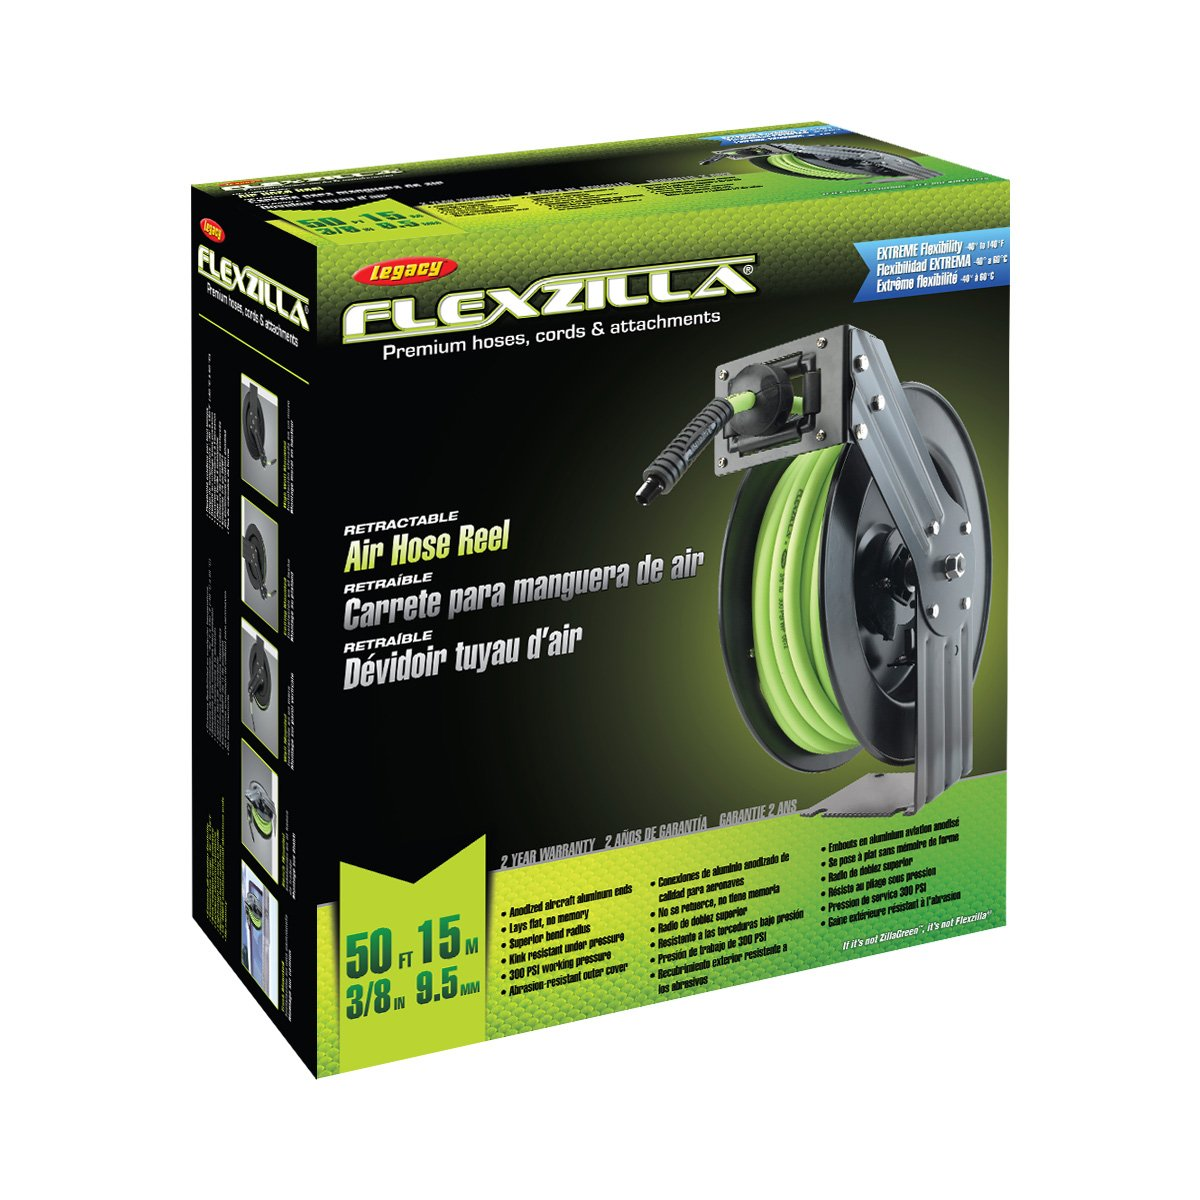 Flexzilla Open Face Retractable Air Hose Reel, 3/8 in. x 50 ft., Heavy Duty, Lightweight, Hybrid, ZillaGreen - L8611FZ by Flexzilla (Image #2)